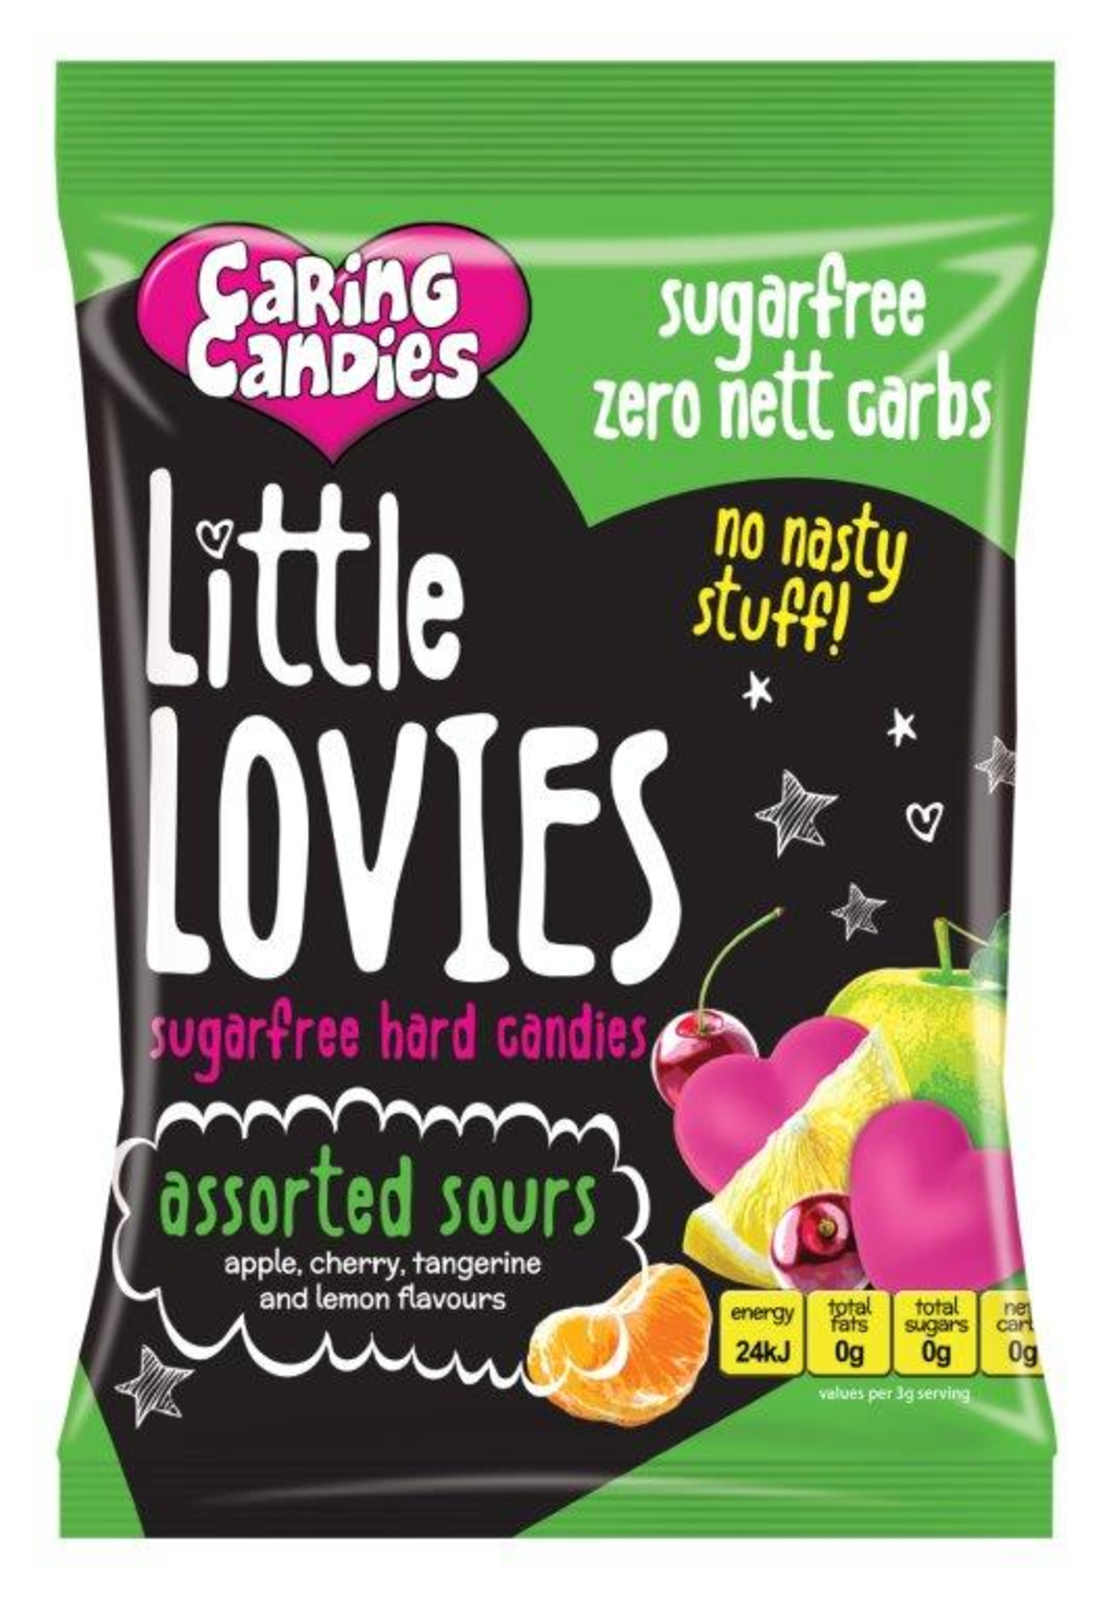 Caring Candies Little Lovies Sours 100g or 1kg